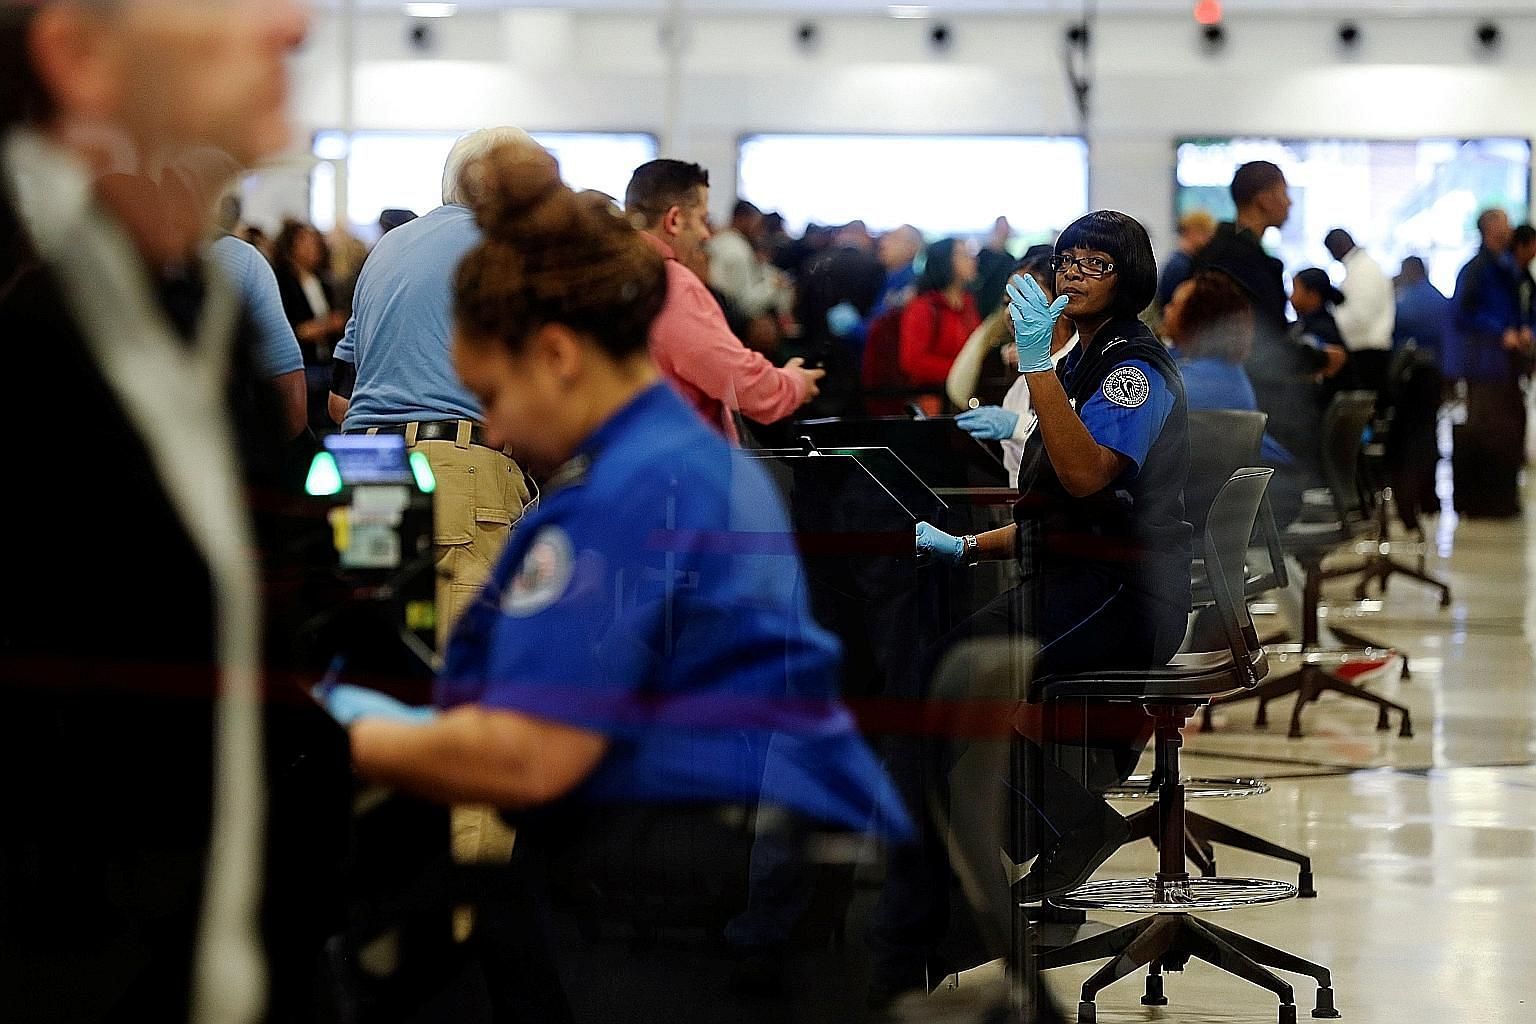 As many as one in every 10 transportation security officers has been failing to show up for work, and backup officers have had to be flown in to bolster depleted ranks at some airports because of the partial US government shutdown. A rising number of